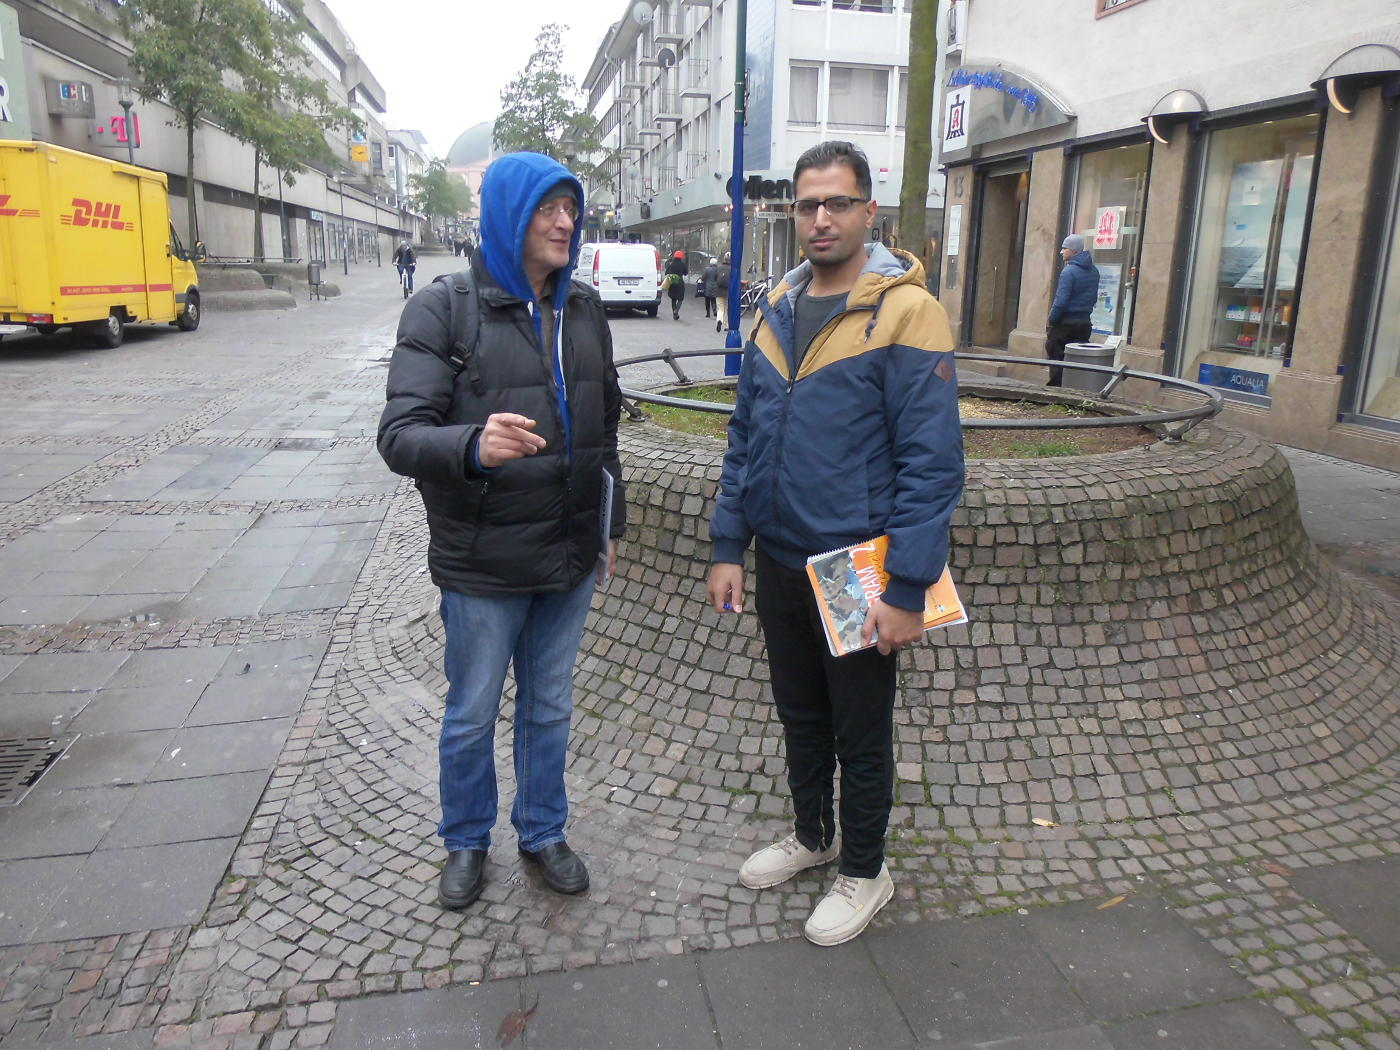 Jehovah's Witnesses in Darmstadt and a Muslim